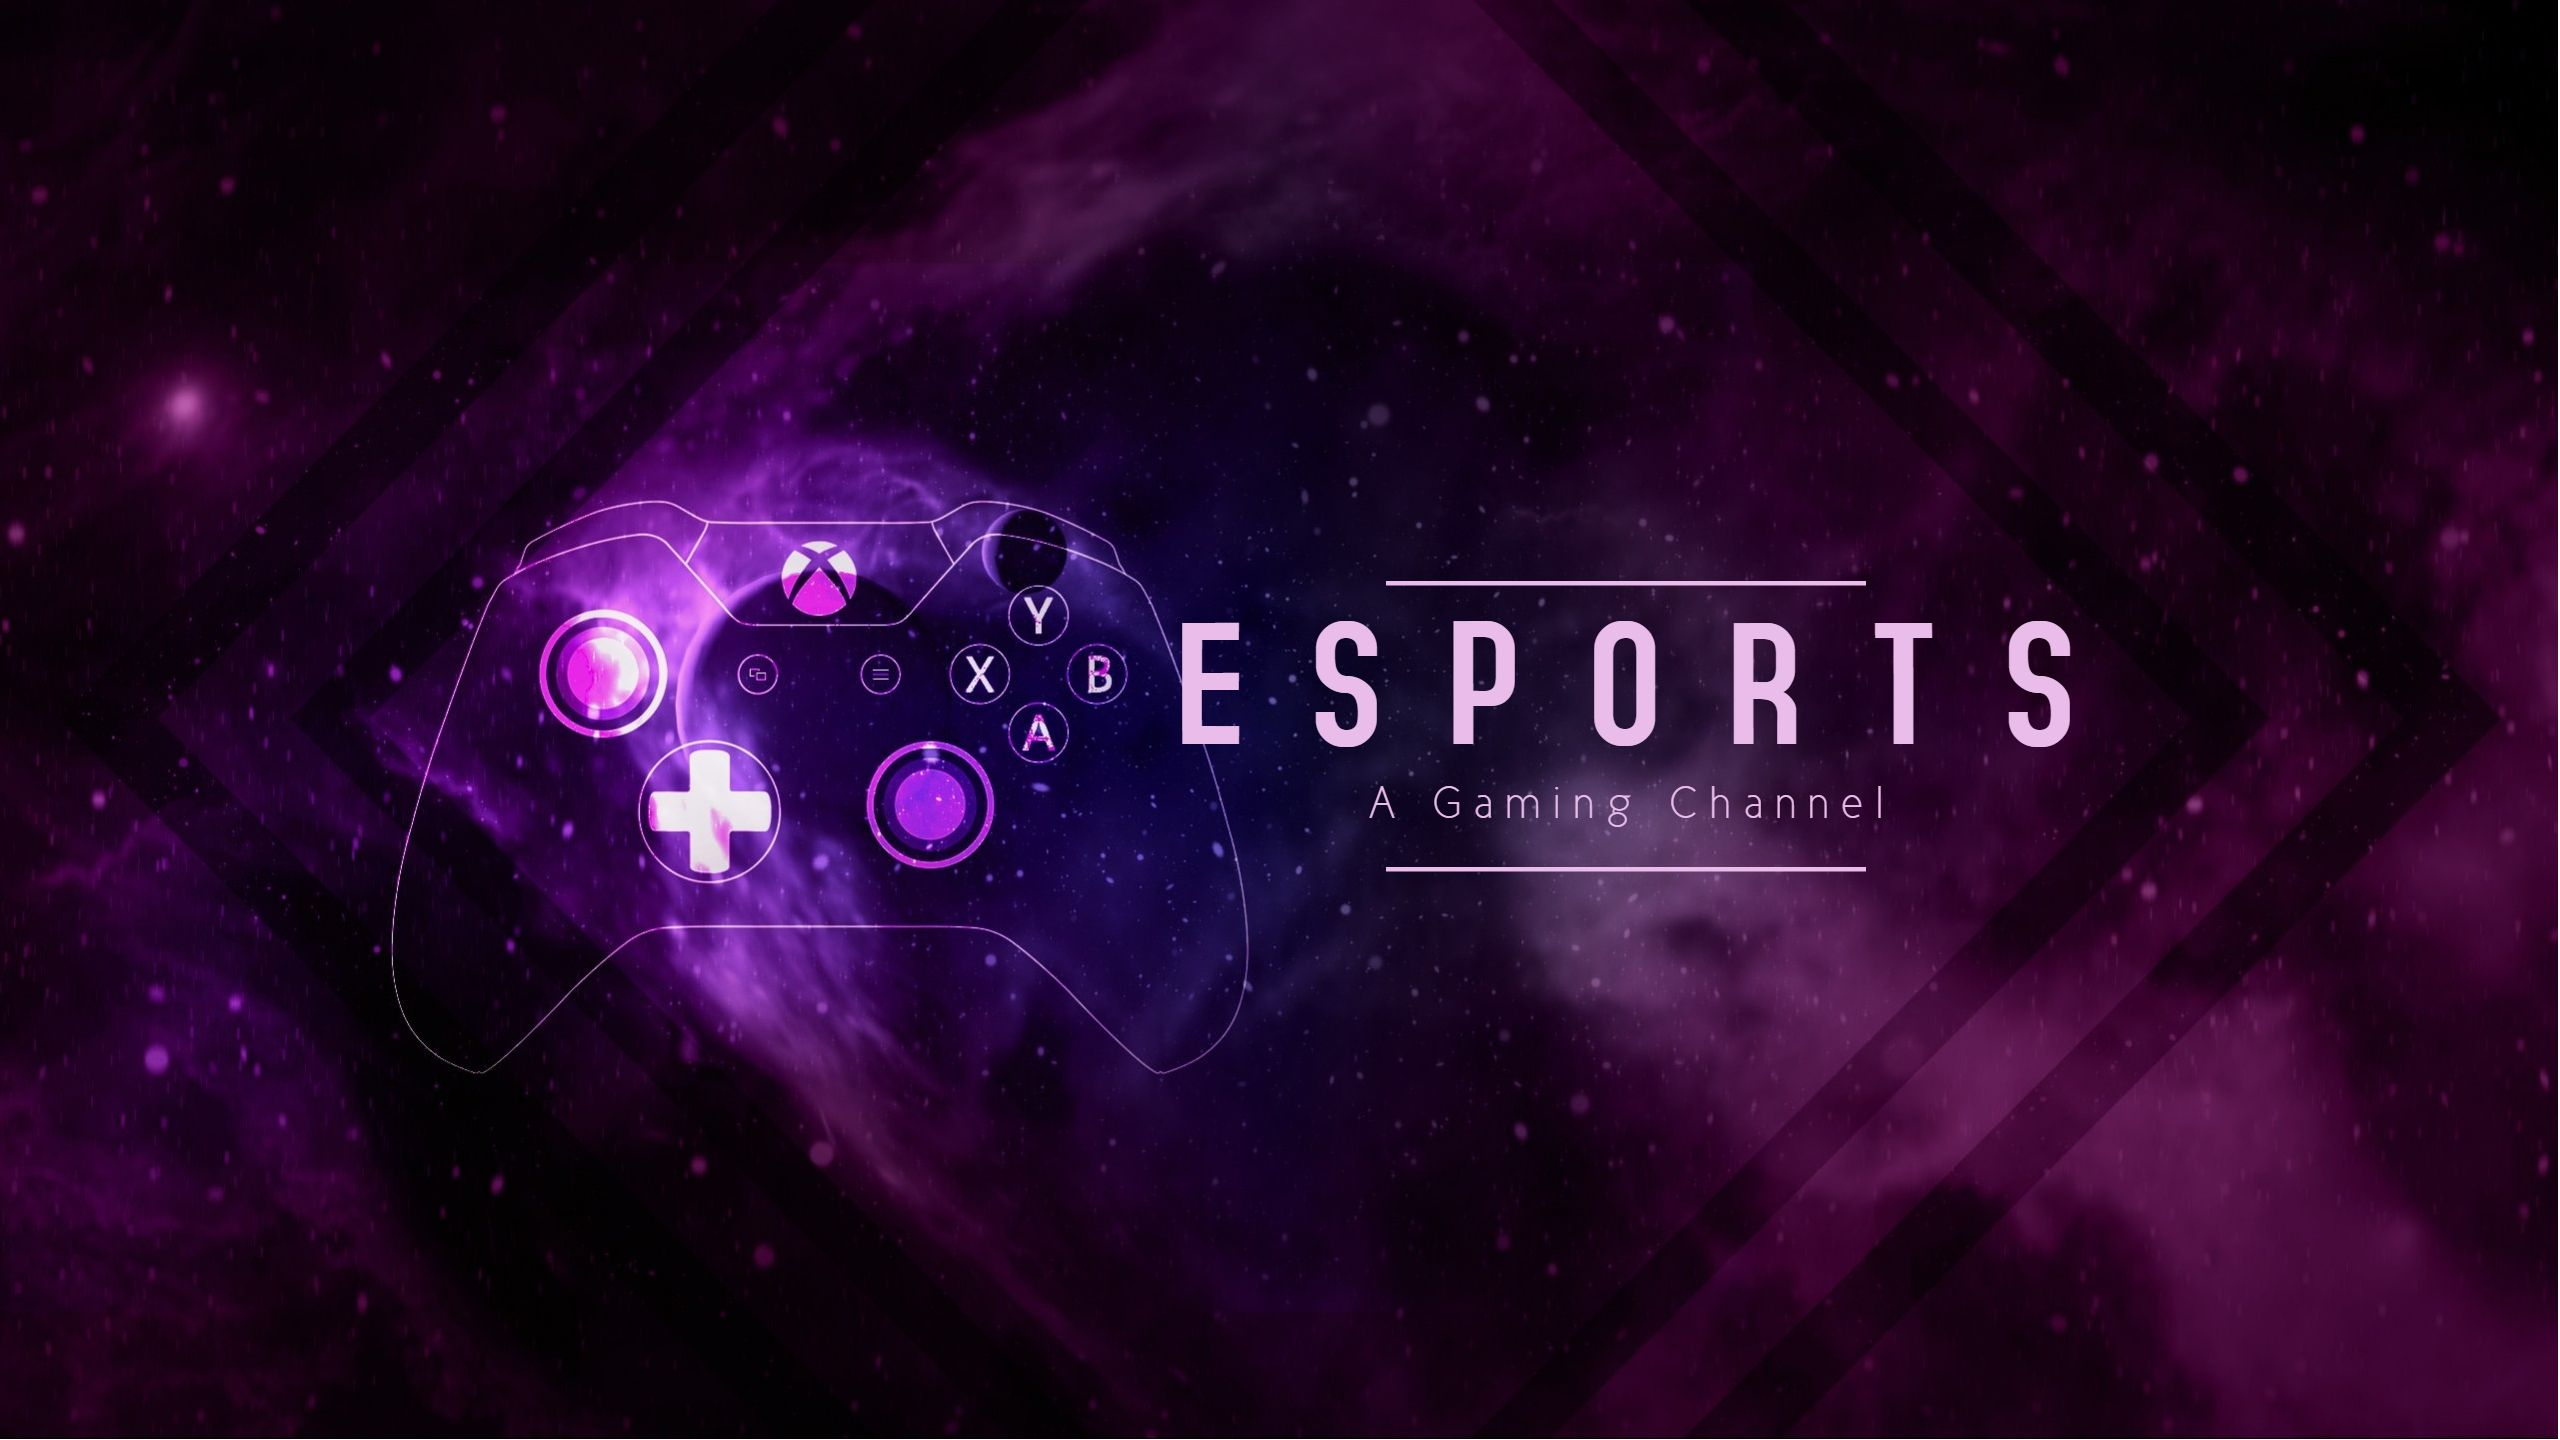 Esports YouTube gaming cover art template design